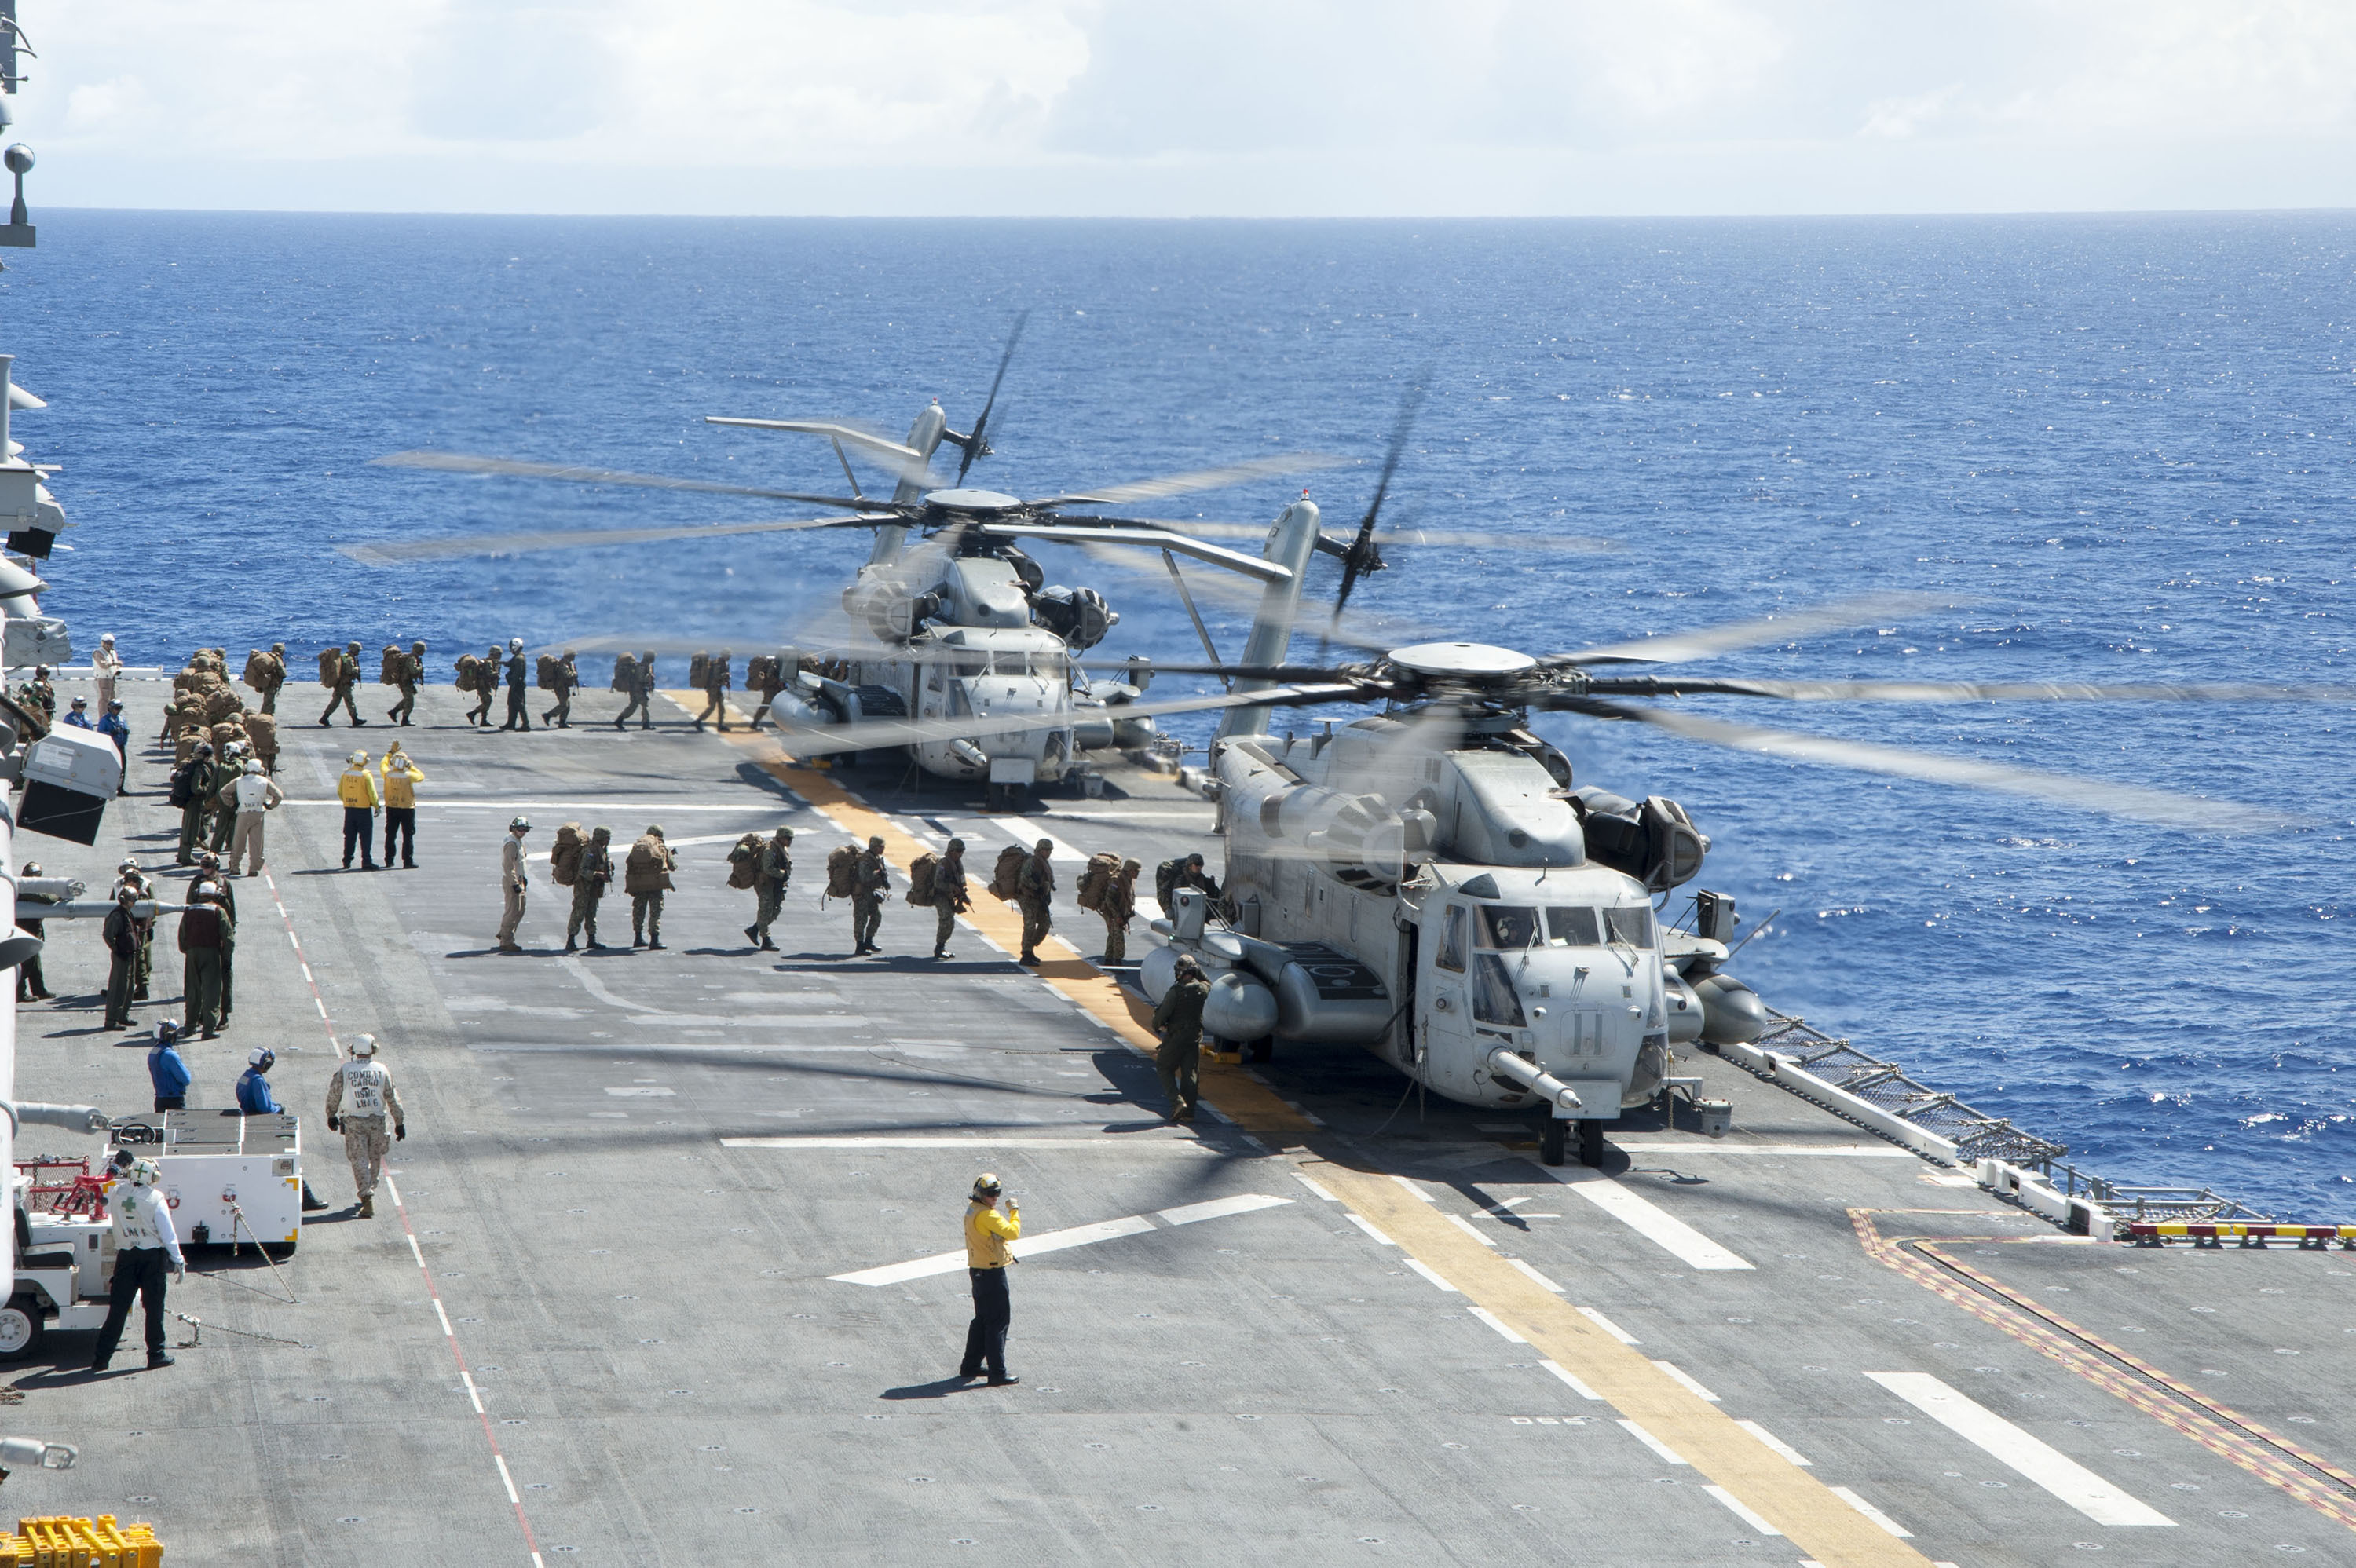 Marines assigned to 2nd Battalion, 3D Marine Regiment board two CH-53 Sea Stallion helicopters on the flight deck of amphibious assault ship USS America (LHA 6) as part of Rim of the Pacific 2016. US Navy photo.